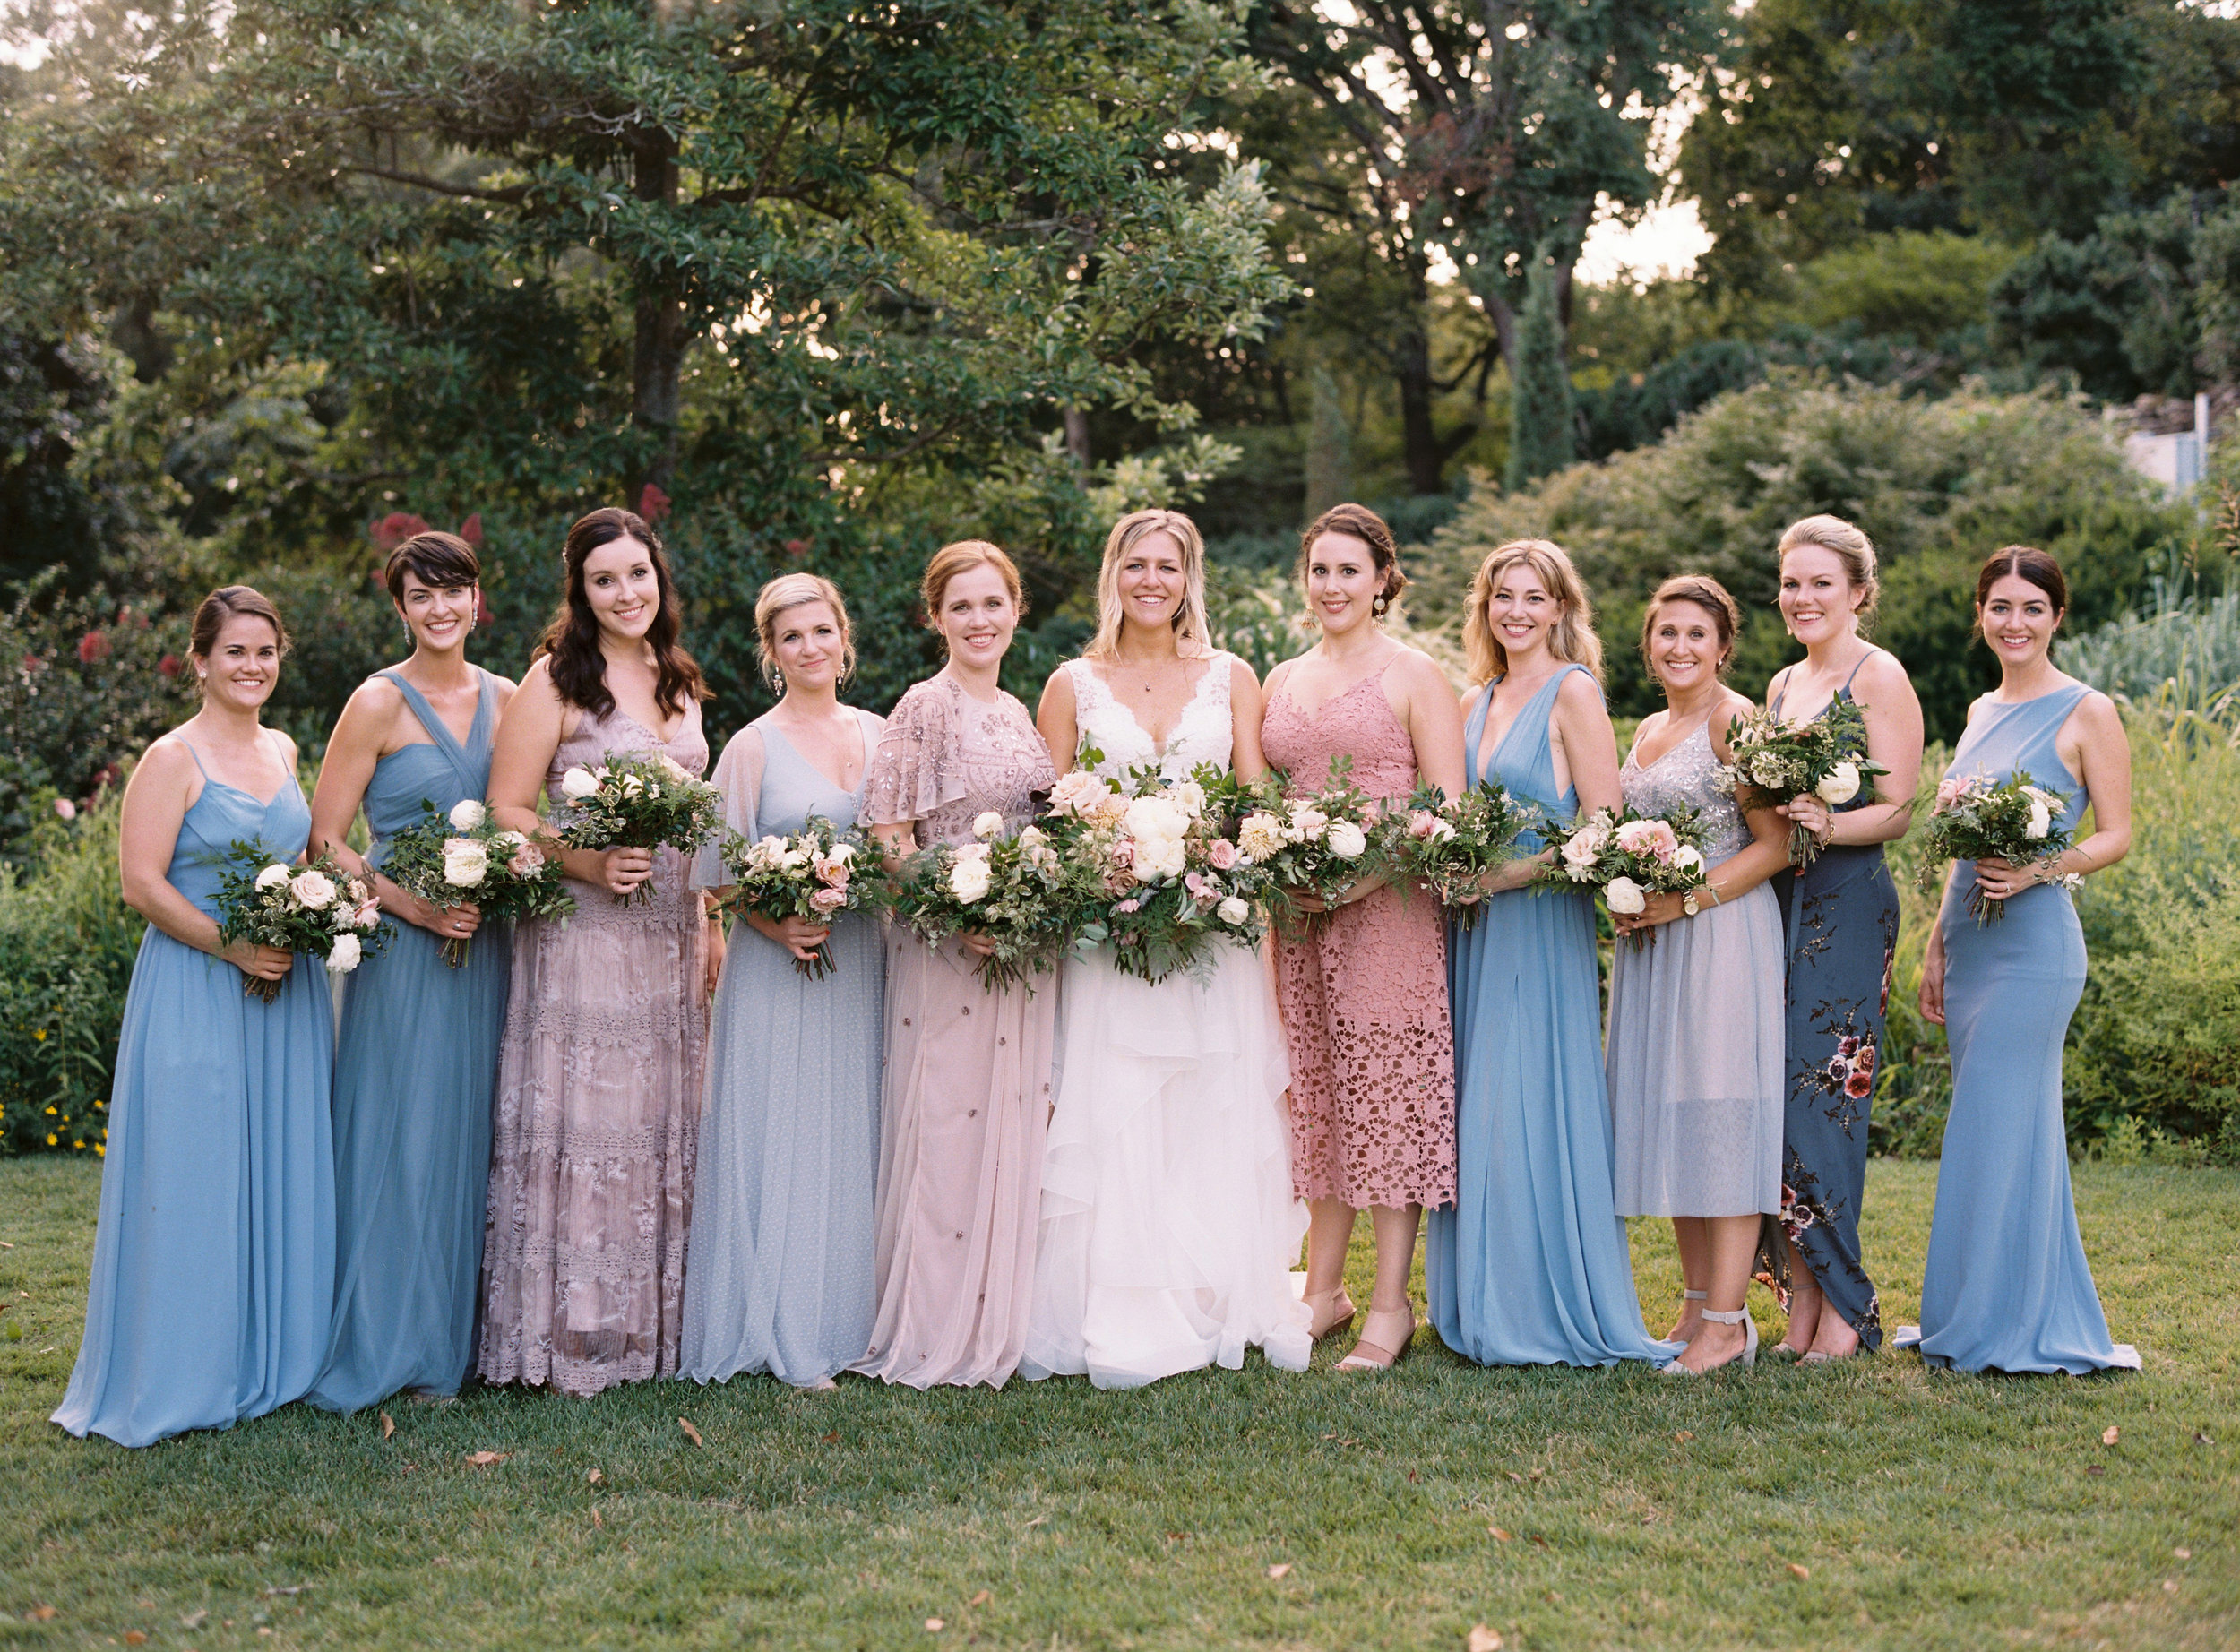 Dusty blue and soft pink bridesmaid dresses with lush, greenery heavy bouquets // Southern US Wedding Floral Design